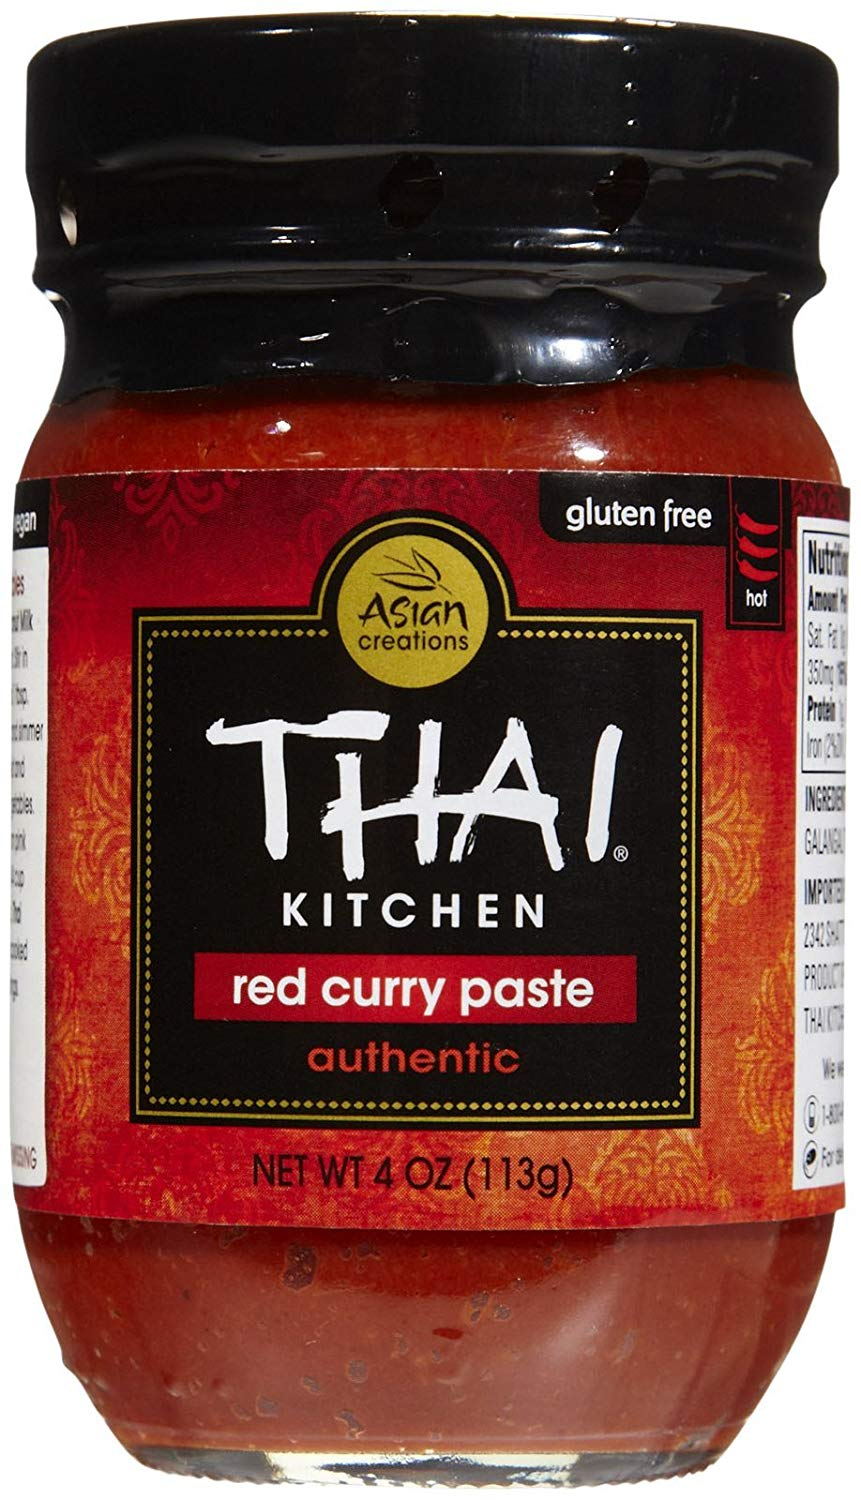 red curry paste.jpg